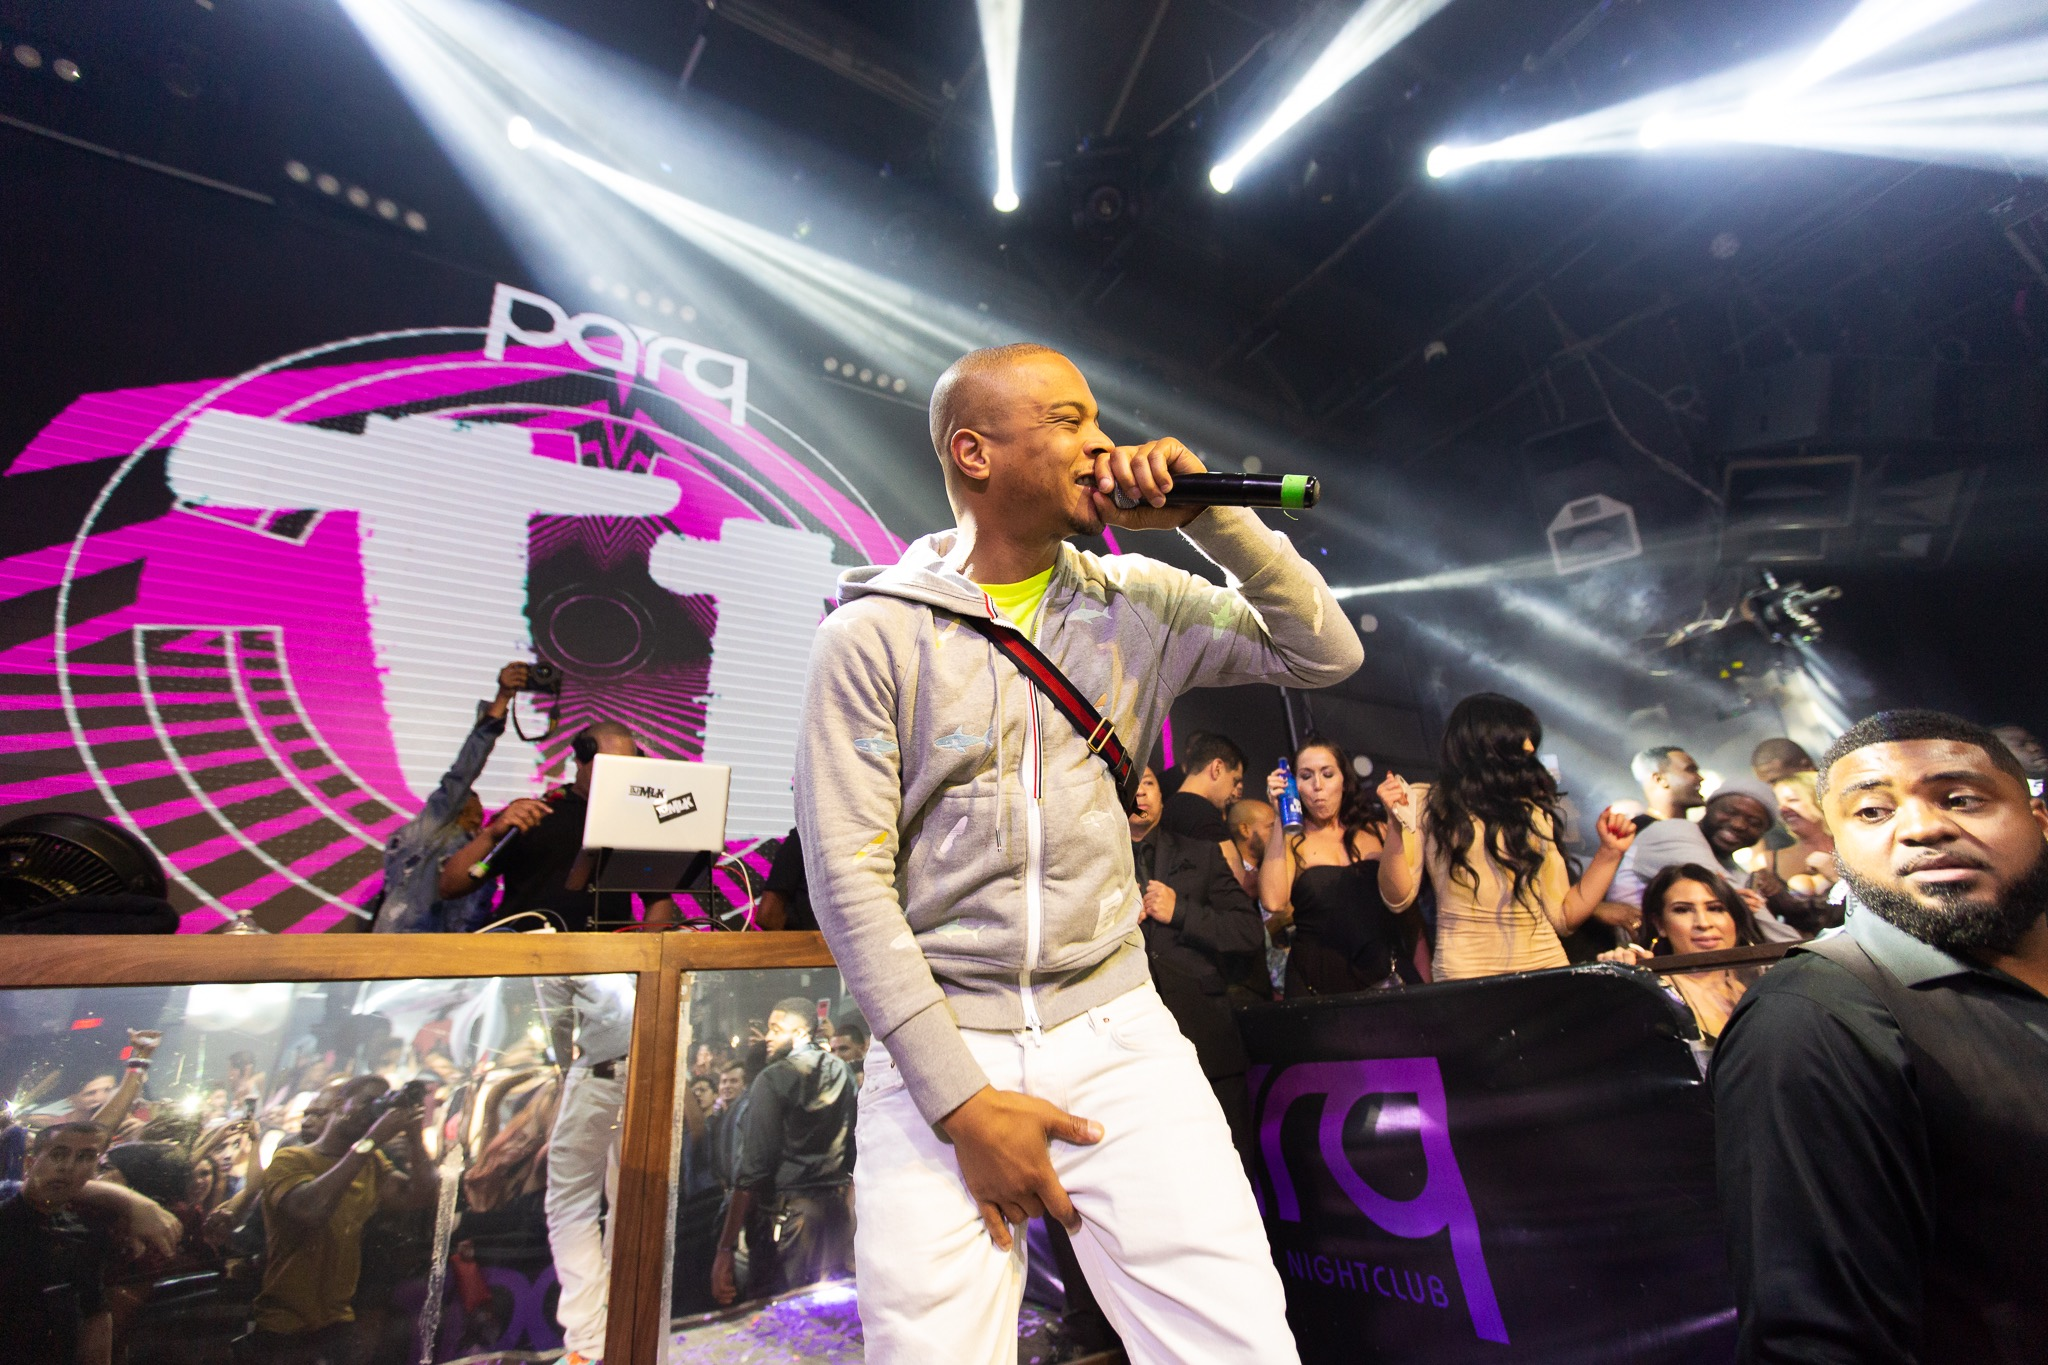 T.I at Parq for PacificSD 06-30-18 (25 of 48).jpg